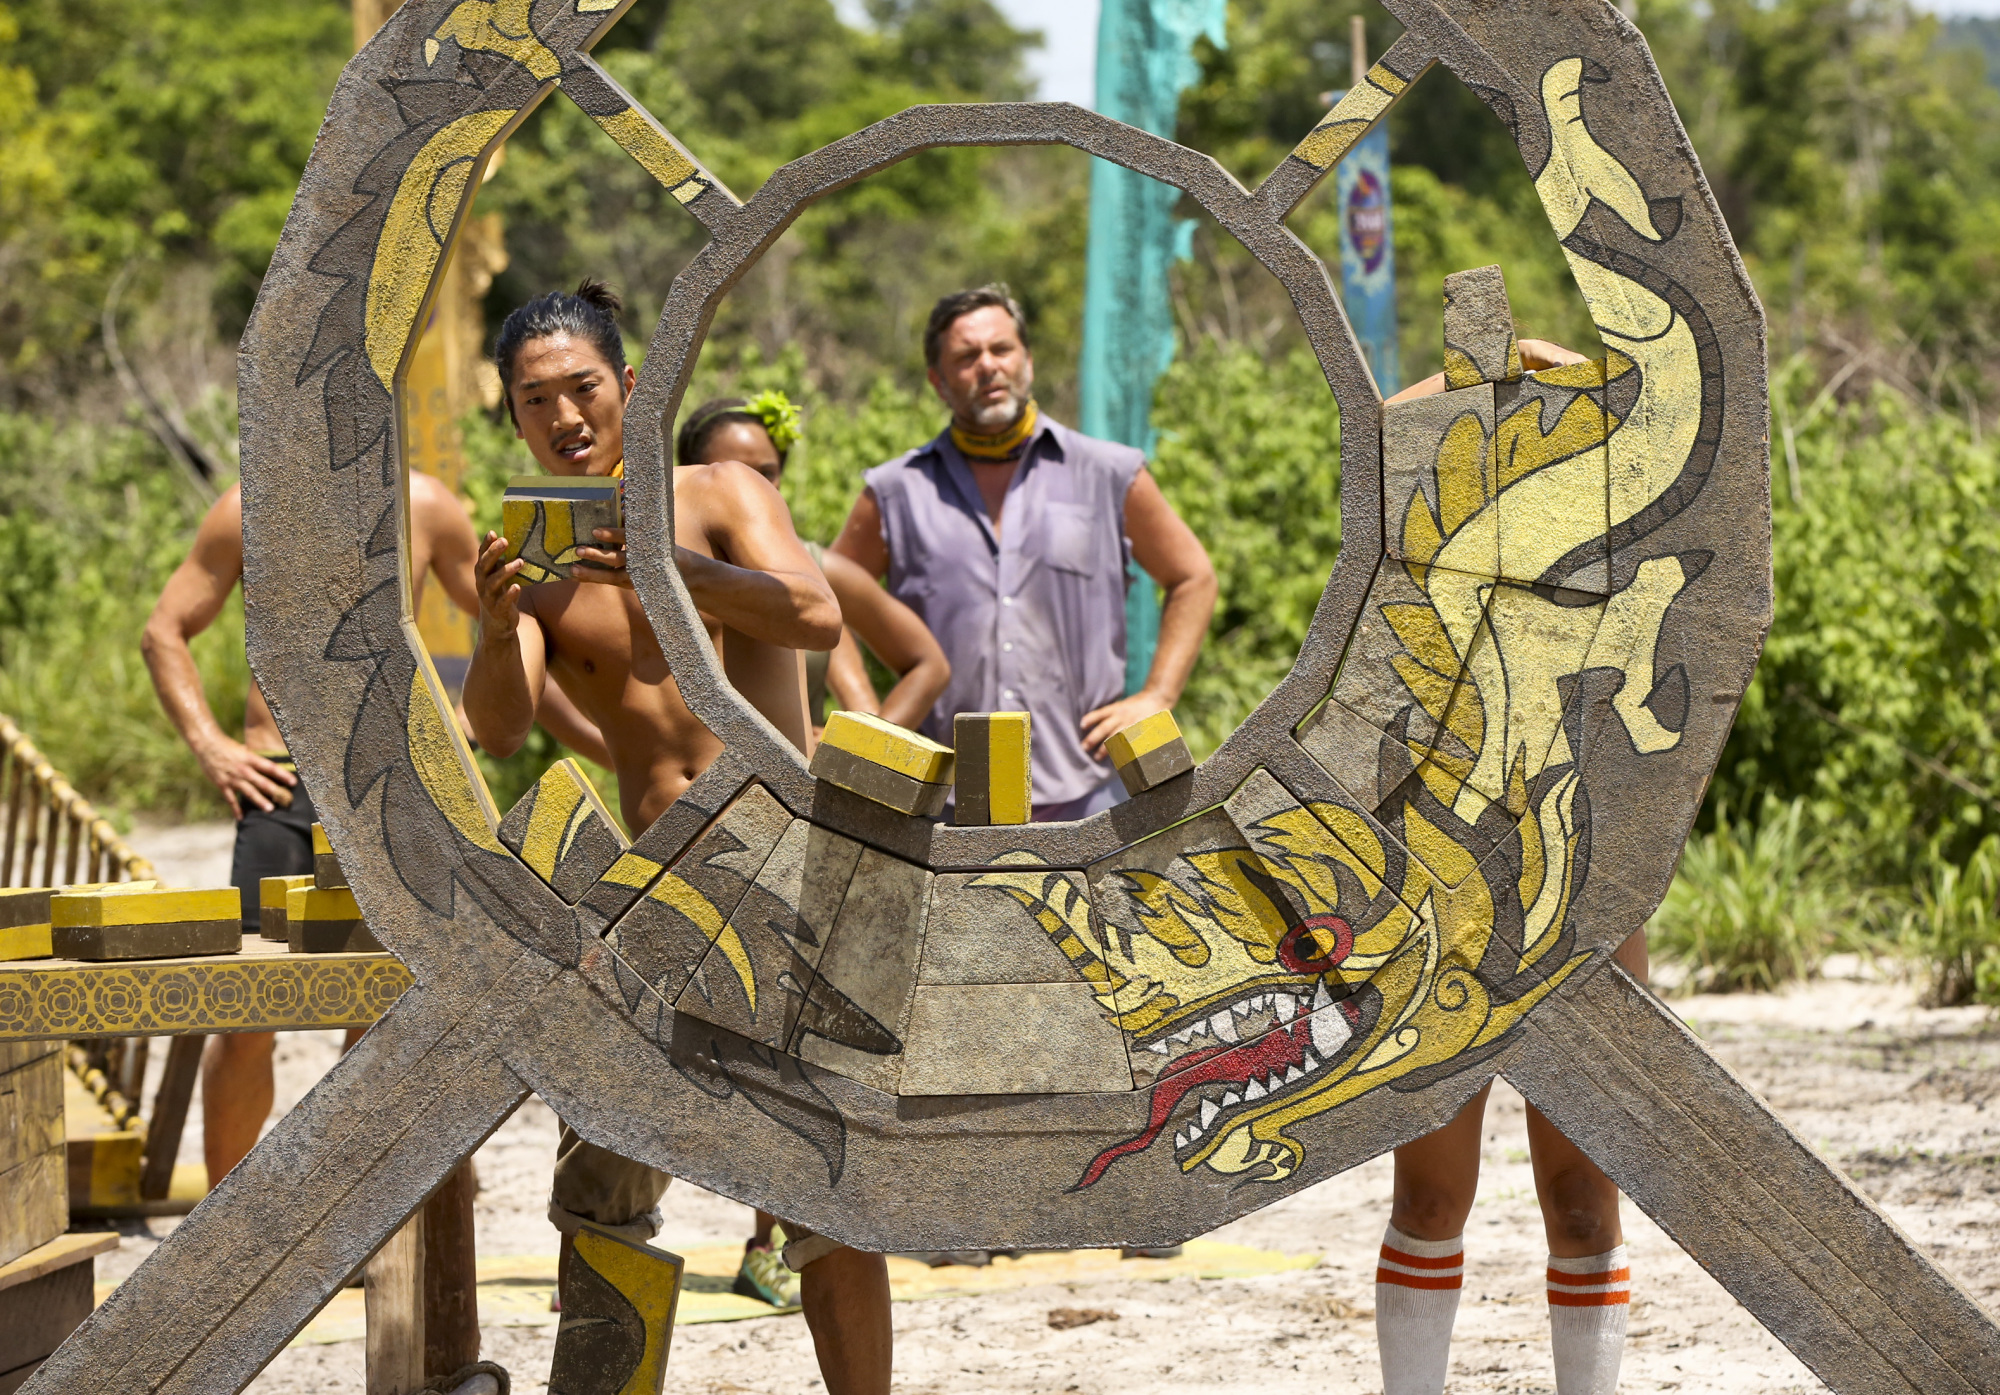 Jeff Varner during puzzle challenge on Survivor: Second Chance